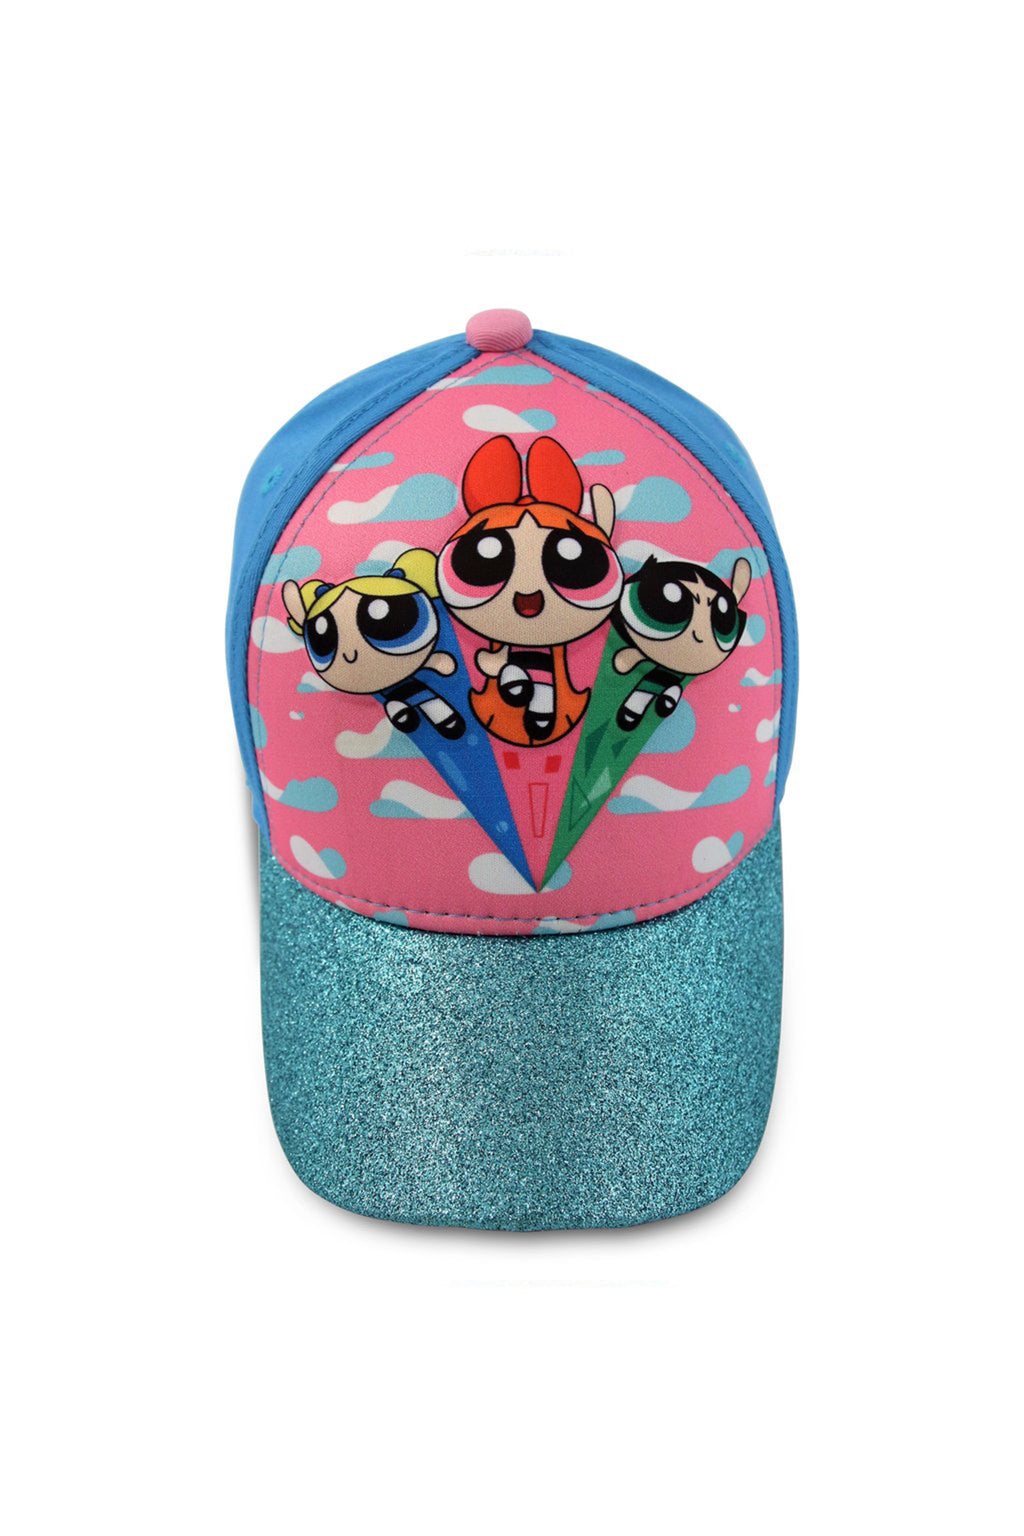 The Powerpuff Girls Baseball Cap